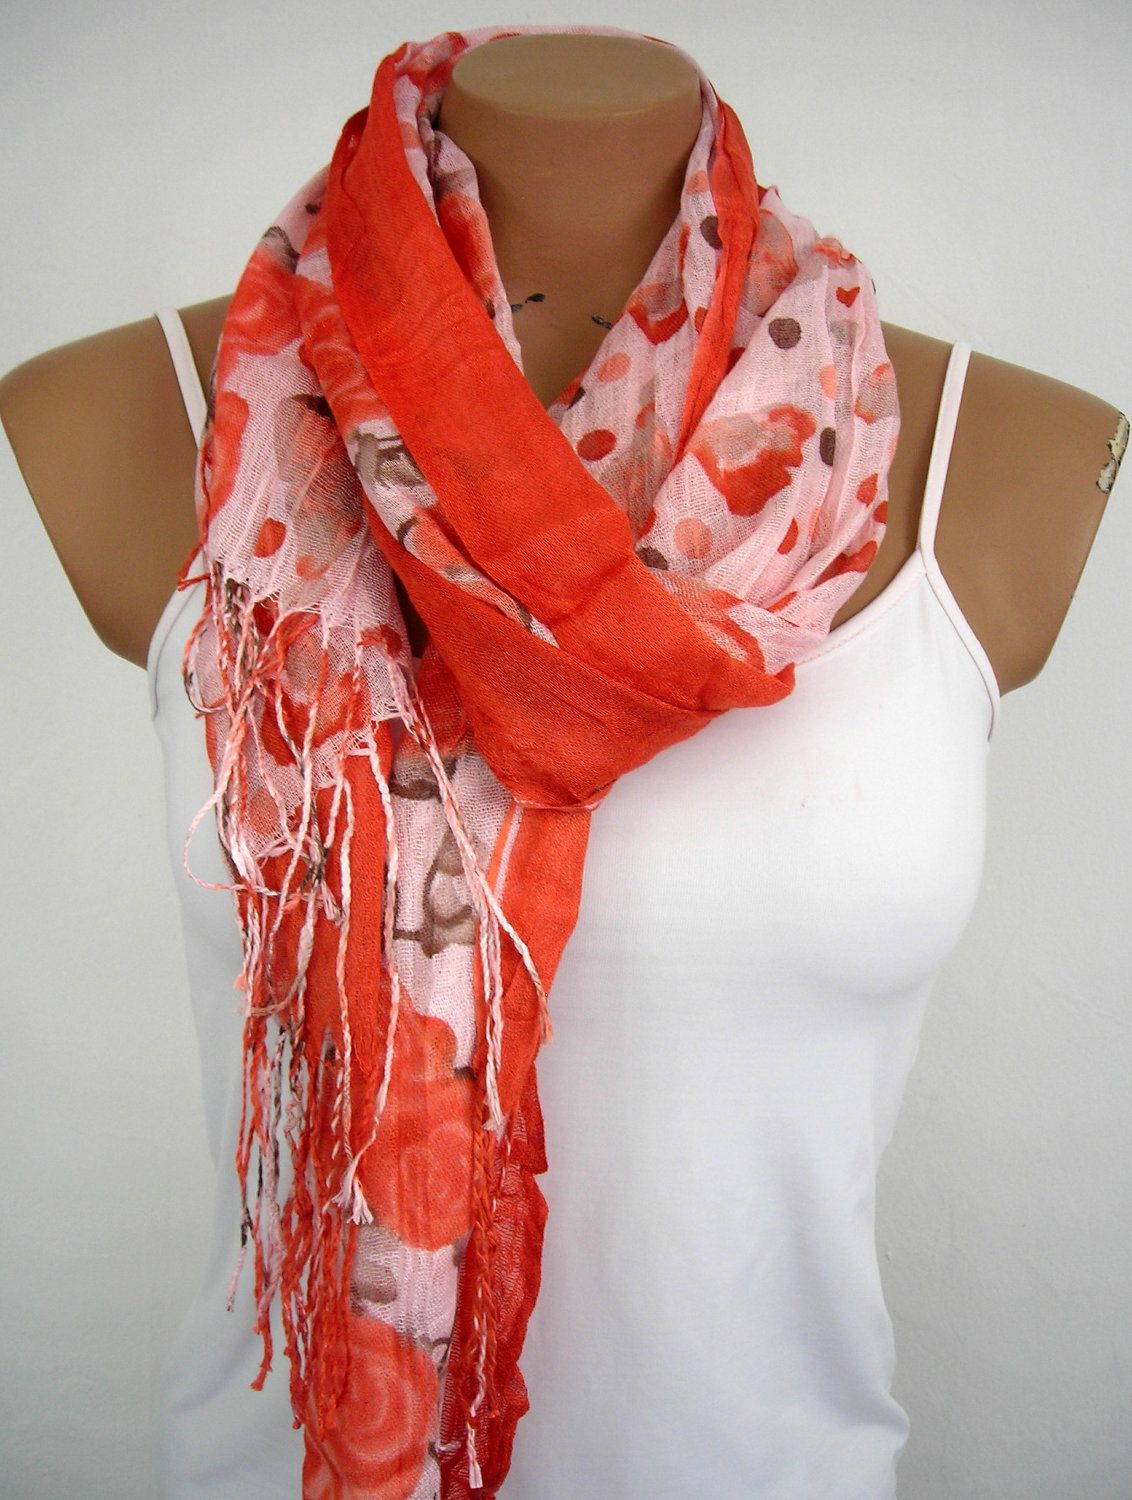 Floral Cotton Women Scarf in Coral Red Brown Autumn Fall Fashion. $15.00, via Etsy.